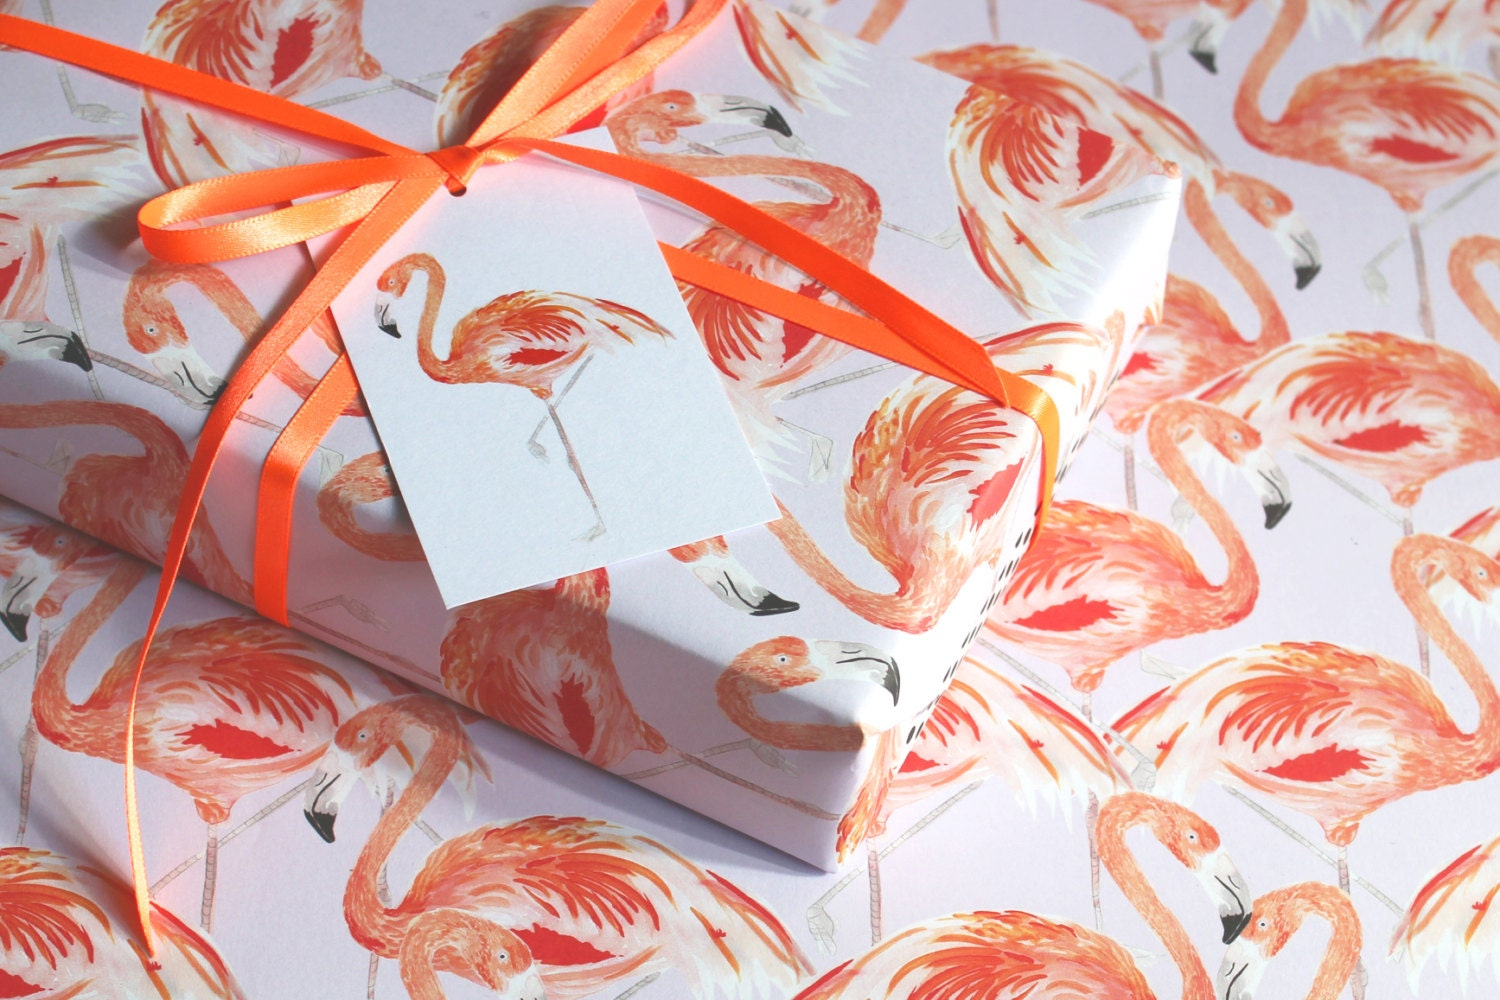 Flamingo Eco Wrapping Paper - blank inside - beautifully illustrated gifts - eco friendly stationery - greetings cards - made in the UK